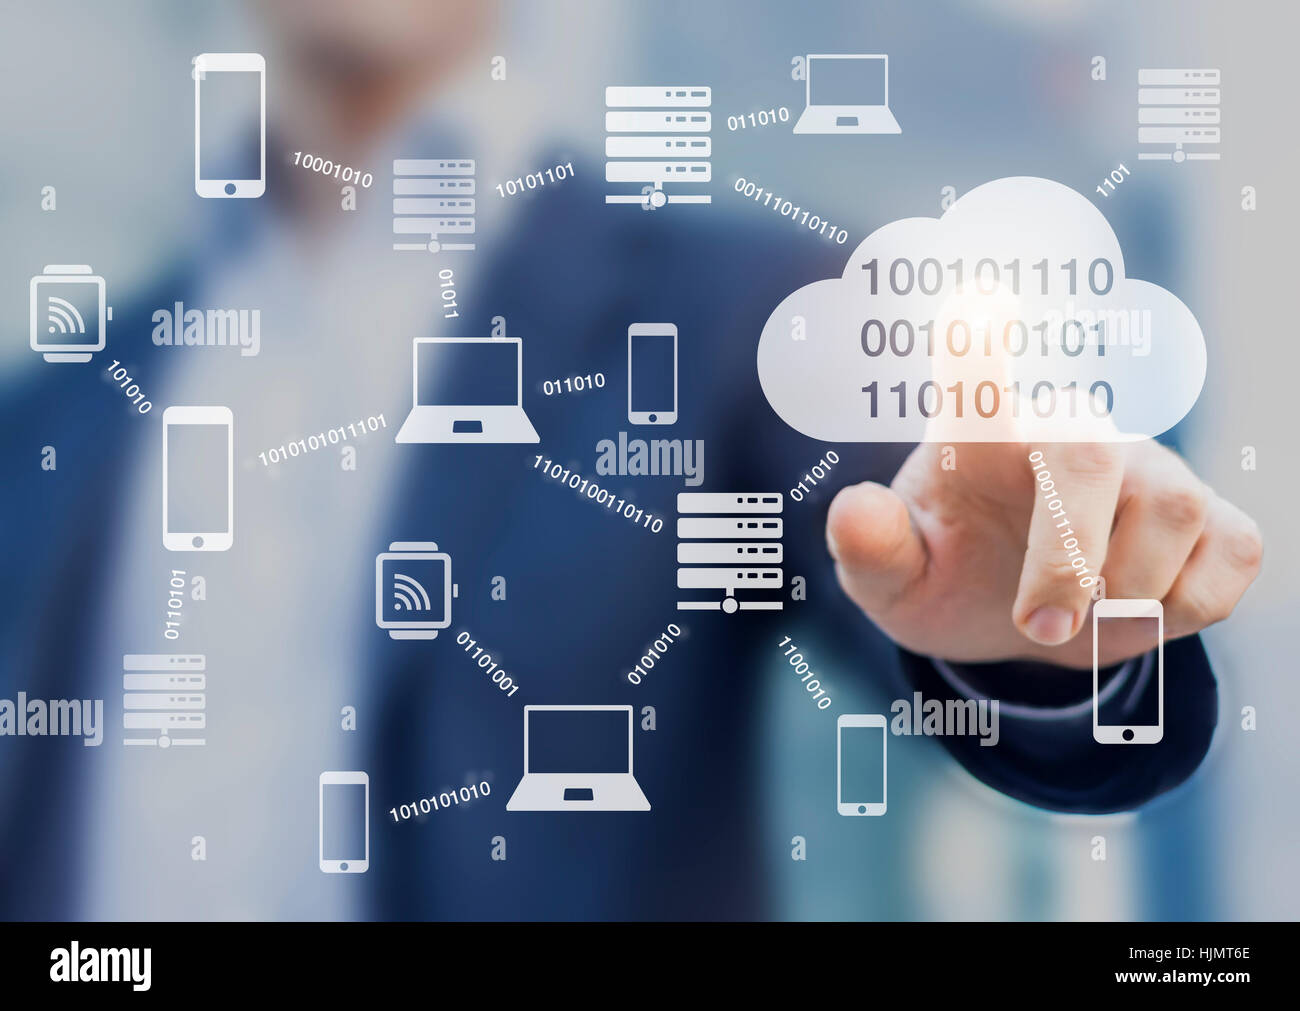 Data transmission and cloud computing concept with a network of servers, computers and devices exchanging binary Stock Photo